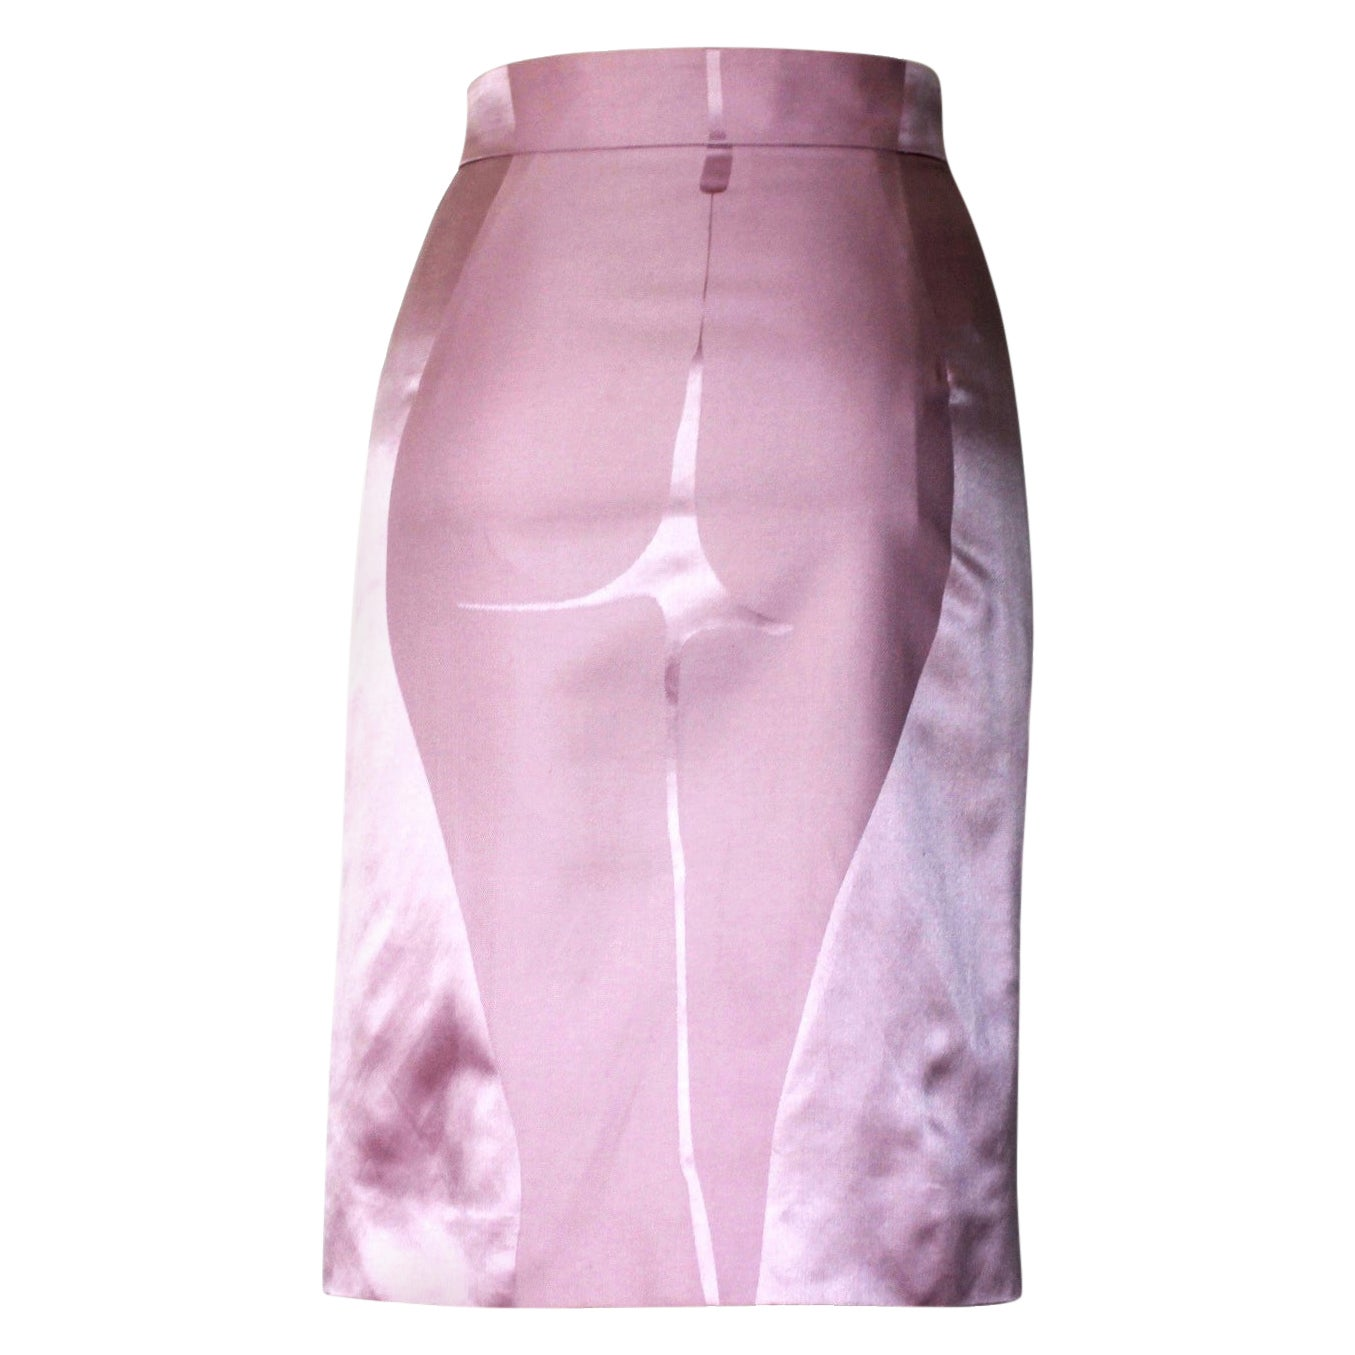 NEW Yves Saint Laurent Rive Gauche by Tom Ford SS 2003 Pink Derriere Skirt